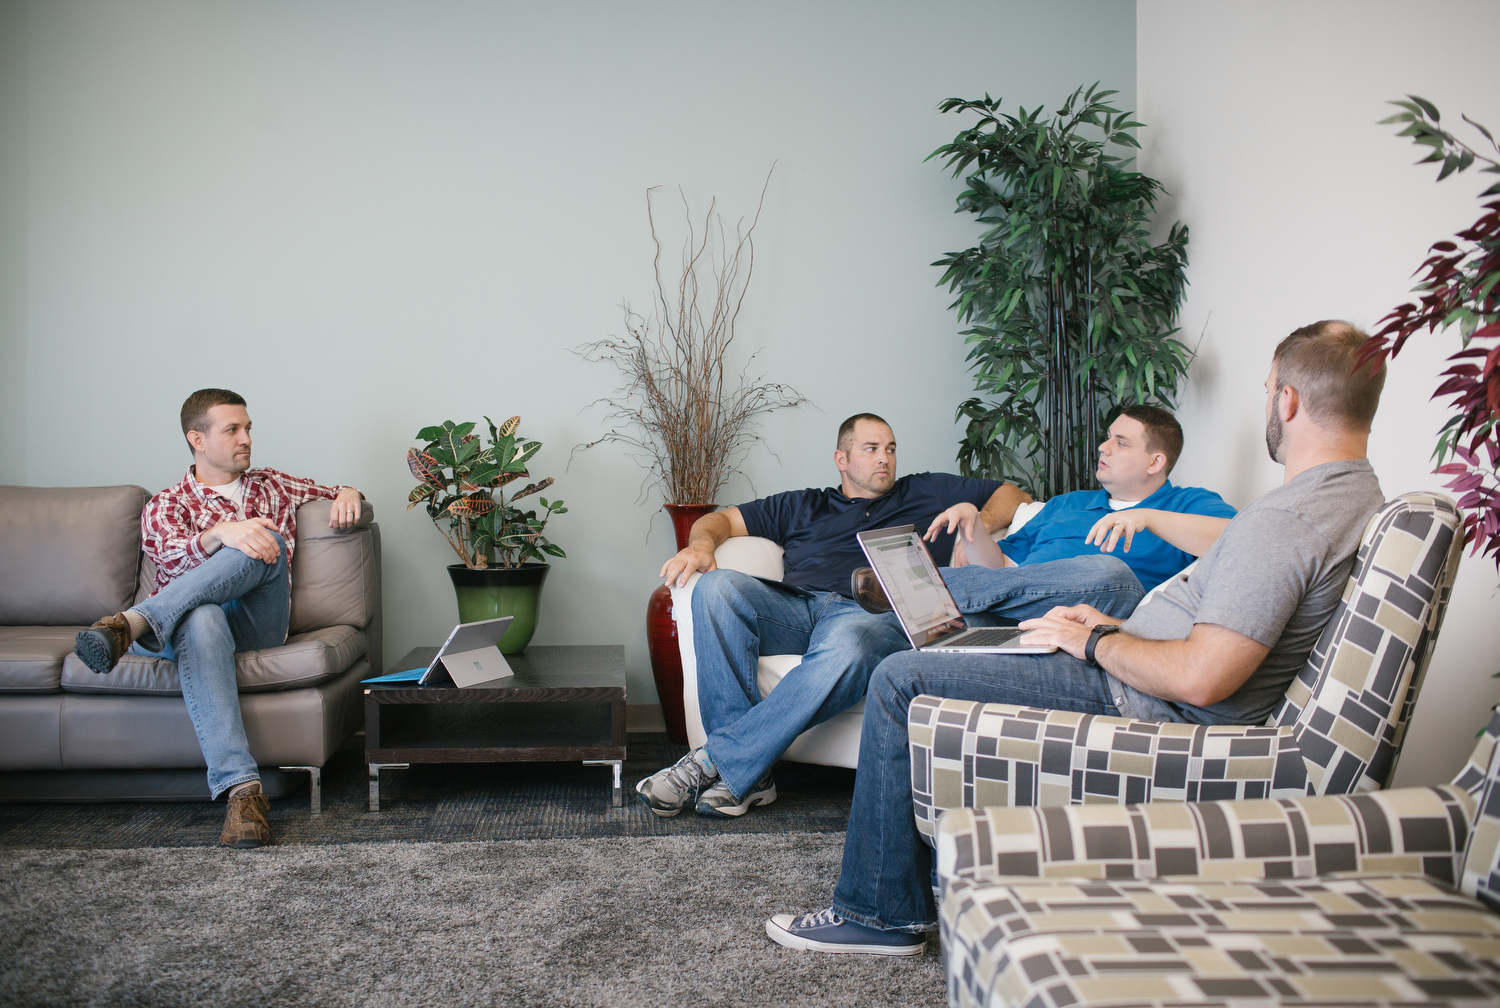 Brad Hinman, Michael Cory, Andrew Jordan, and Greg Sutton, left to right, talk during a weekly project meeting at PILR TECH's office in Joplin, Mo. on Sept. 27, 2016. Photo by Brad Zweerink